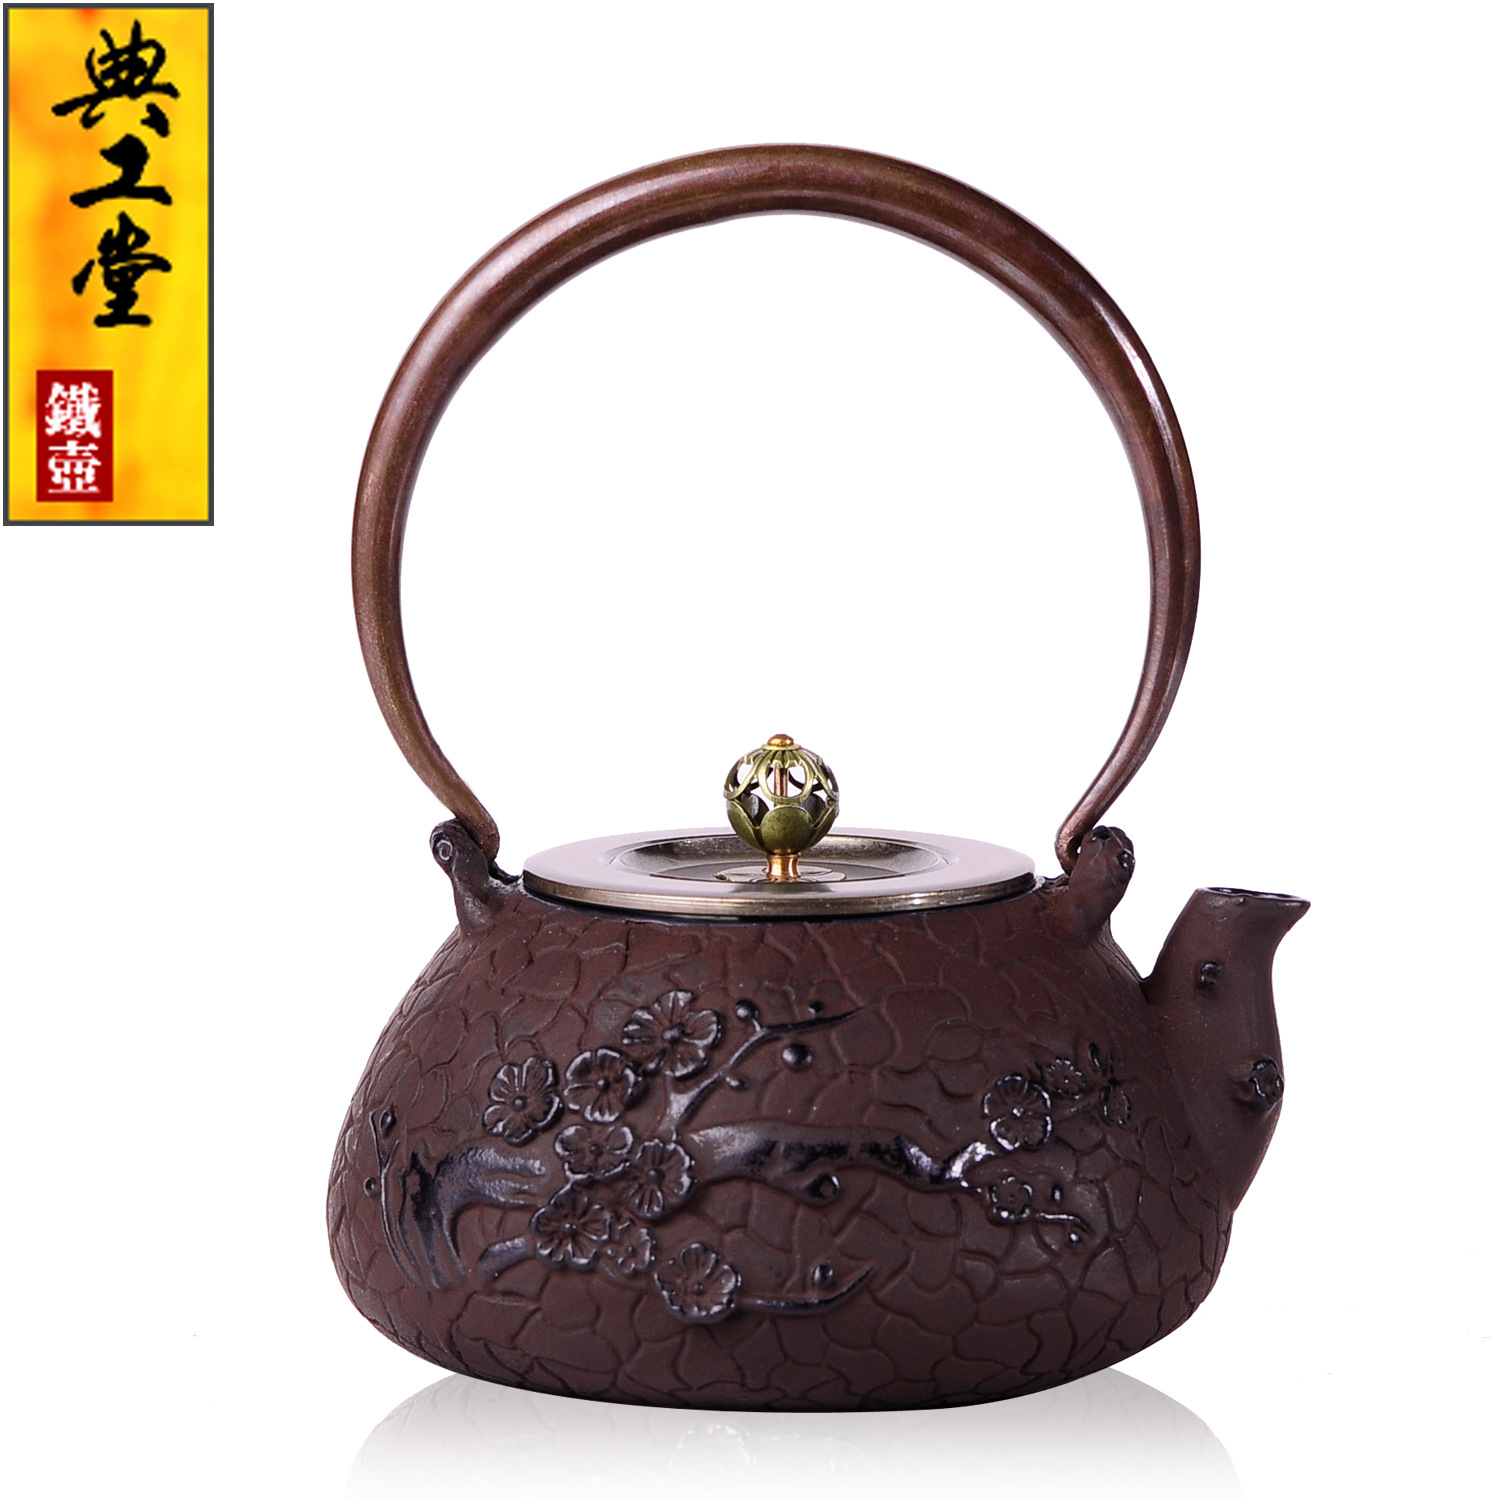 High quality japanese style cast iron teapot infuser pot tea set cooking tools tetsubin kettle - Japanese teapot with infuser ...